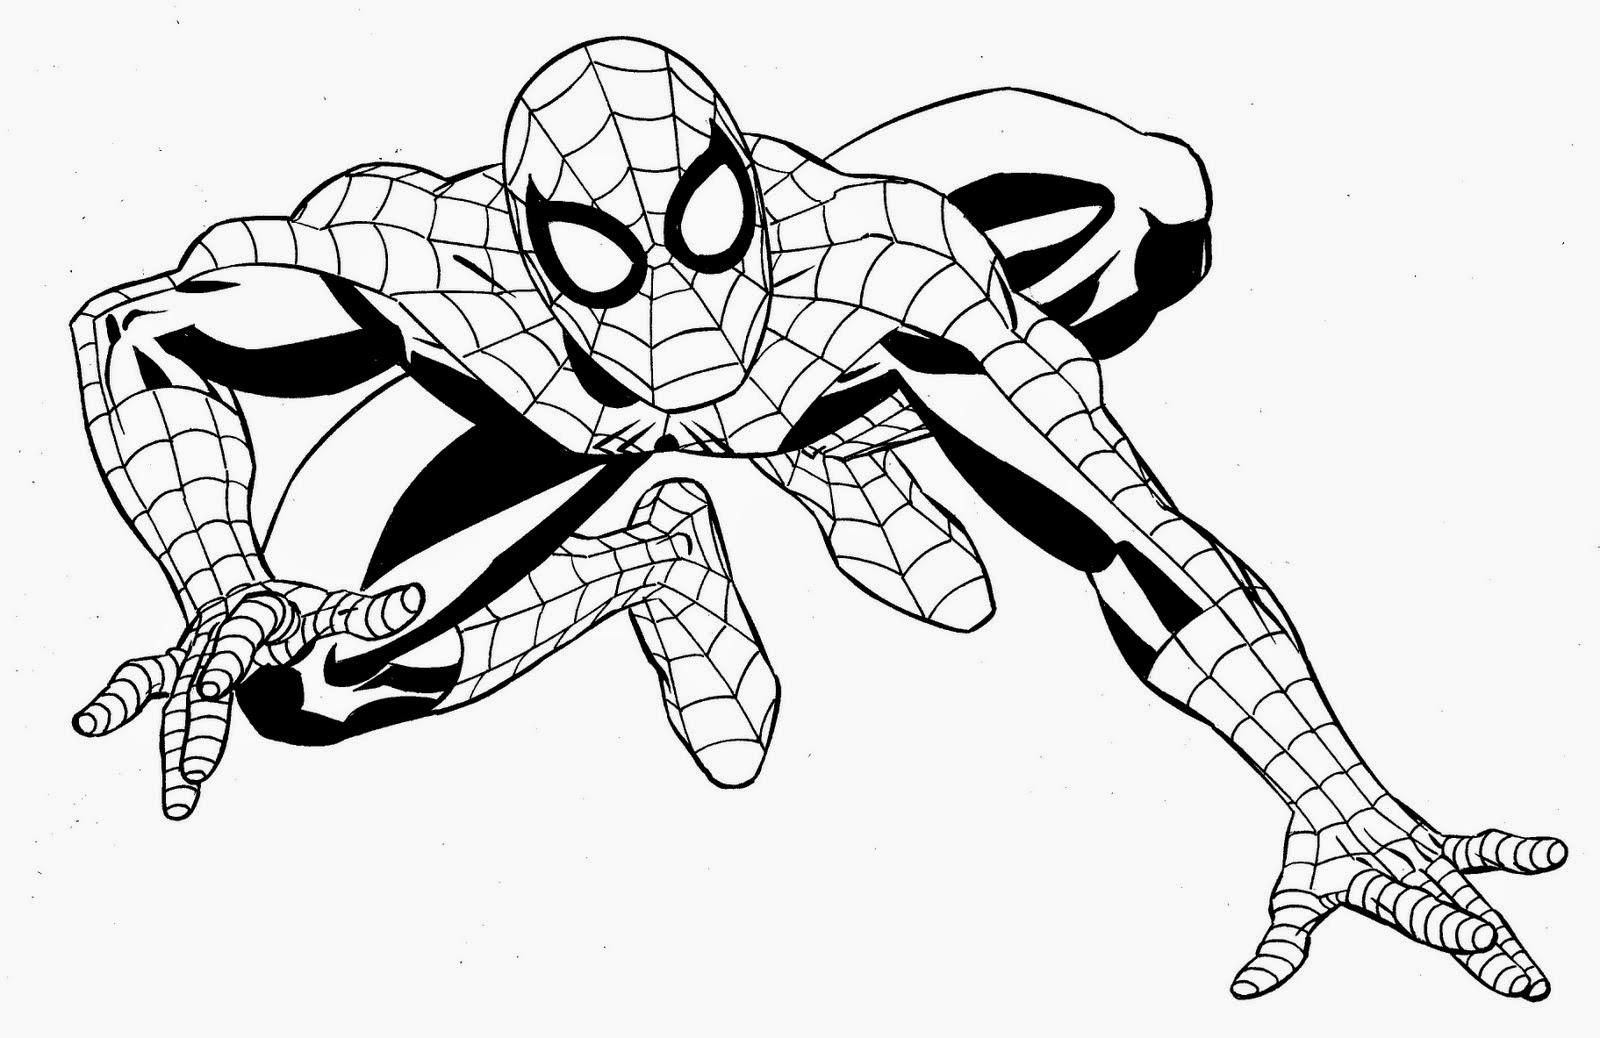 super hero coloring sheet dc superhero coloring pages download and print for free hero super coloring sheet